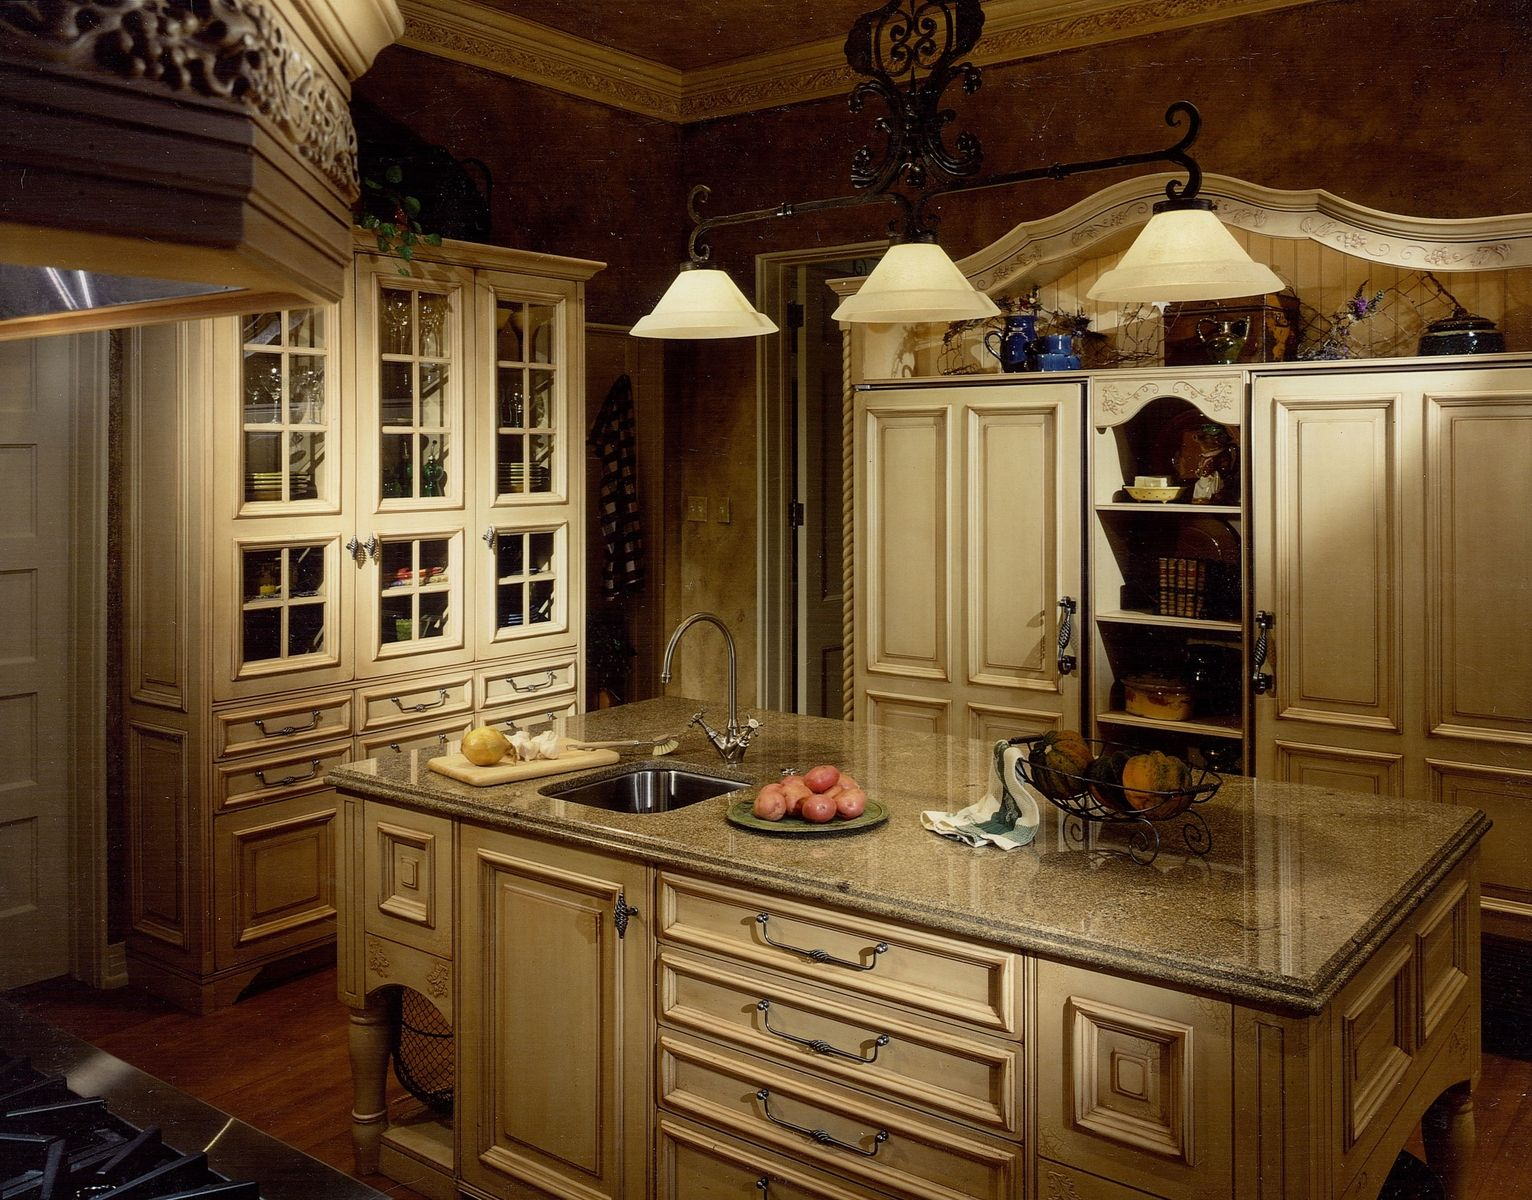 handmade furniturizing  french country kitchen remodel  cabinets design iron llc